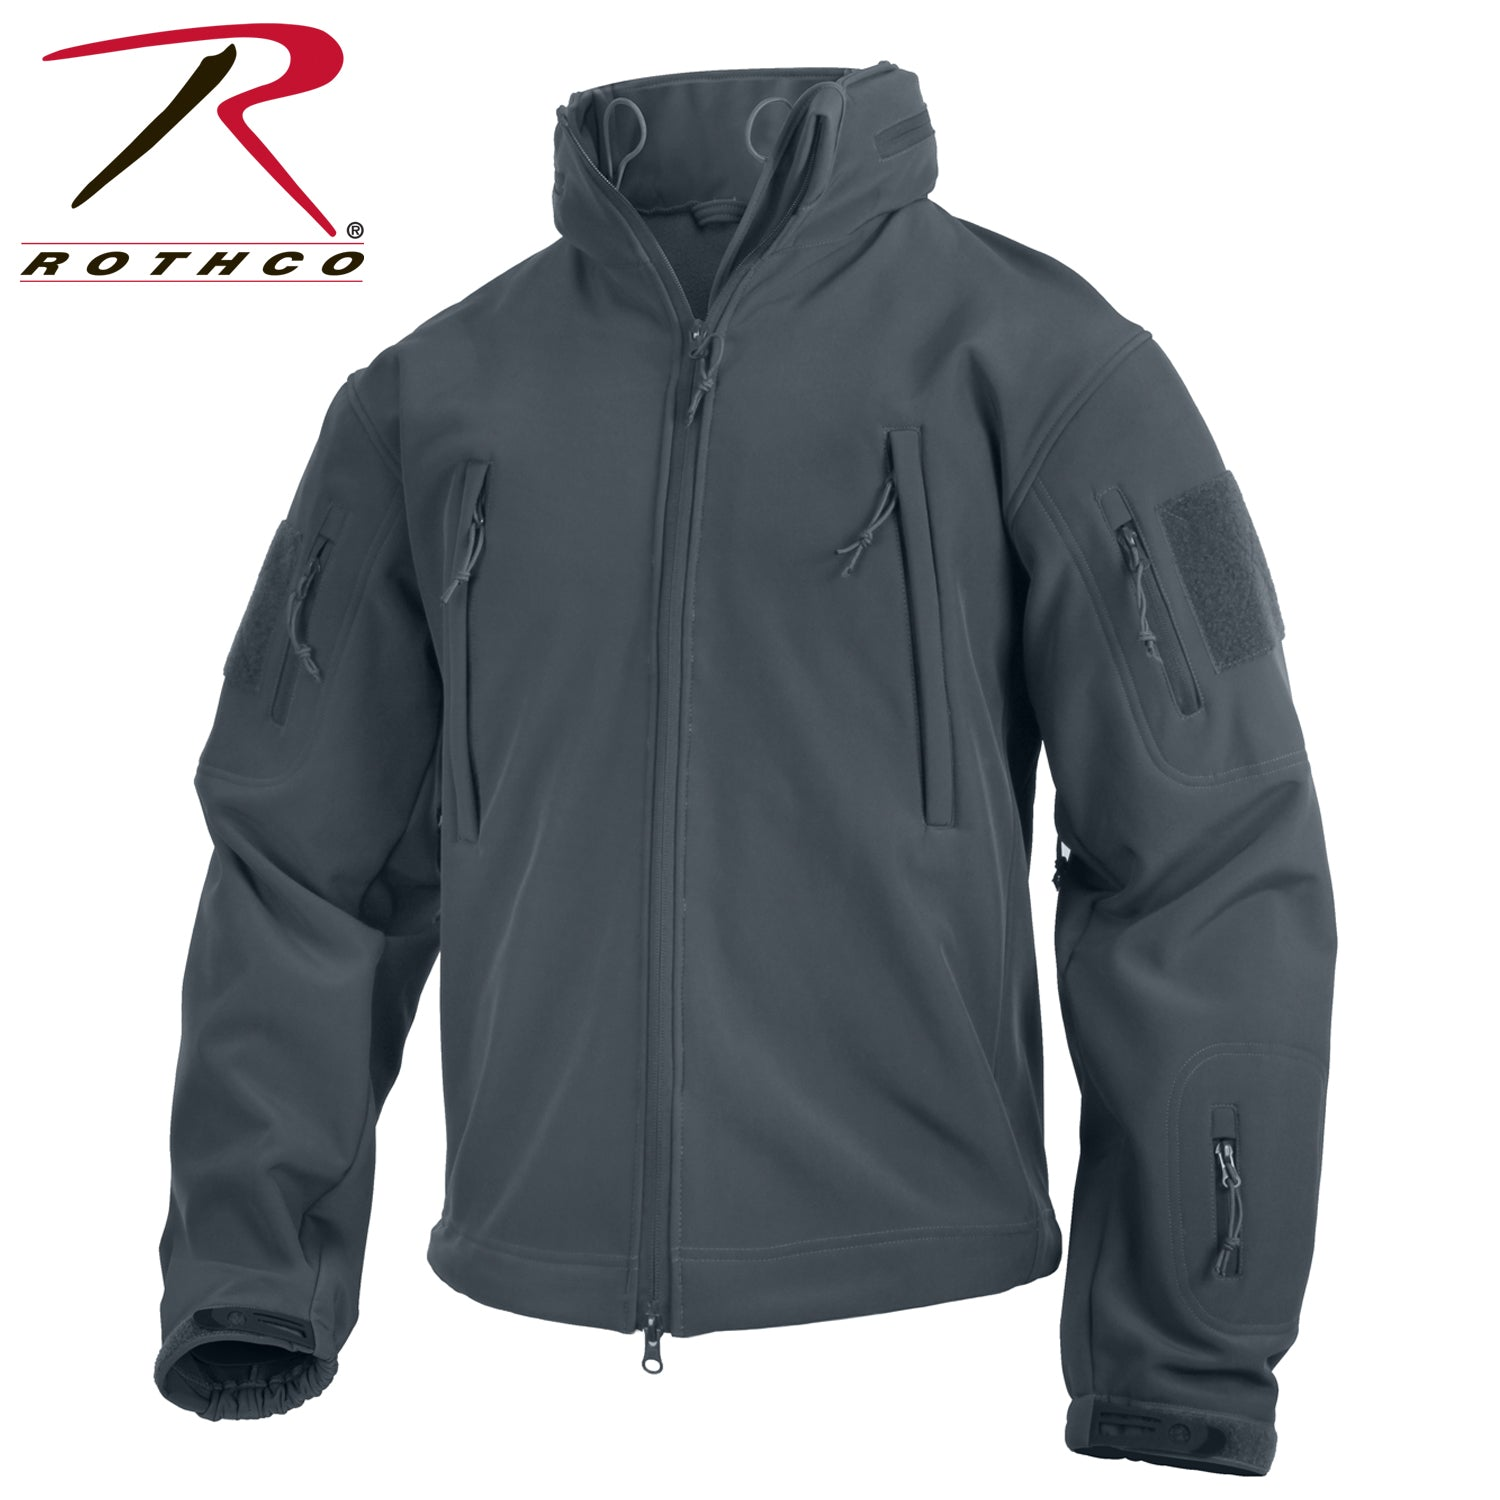 Rothco 9511 Midnite Navy Blue Special Ops Tactical Softshell Jacket